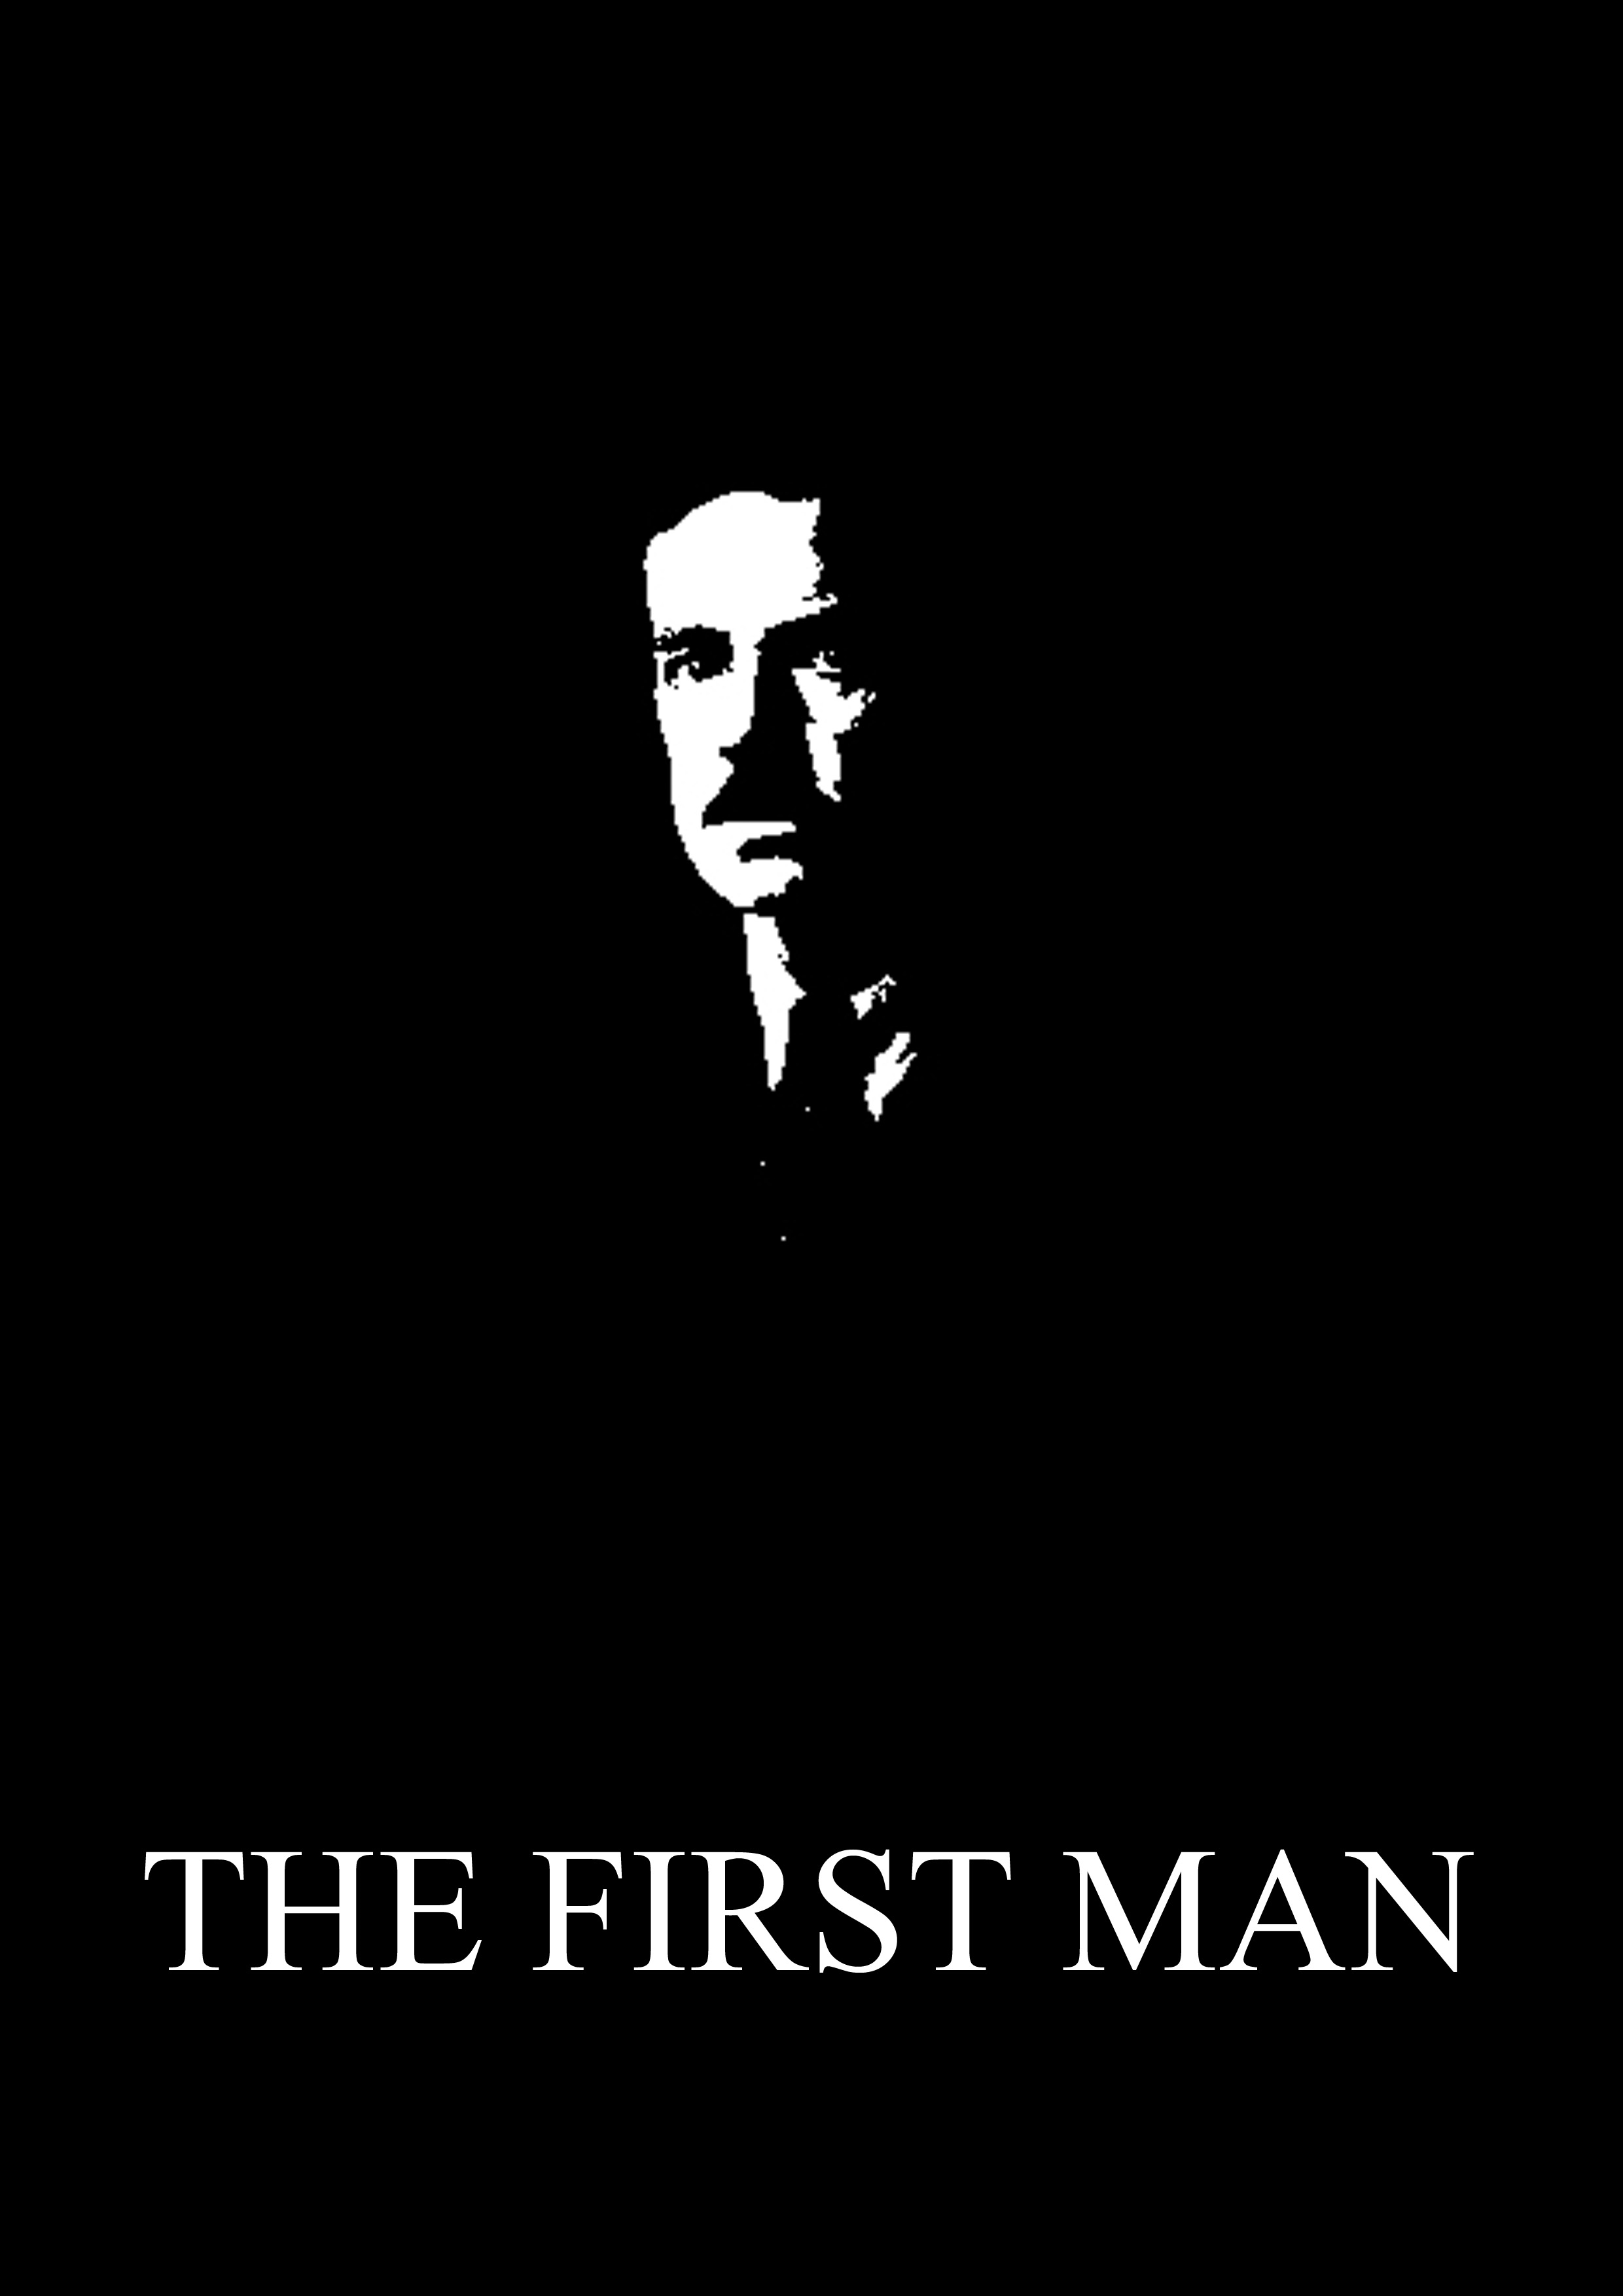 The First Man